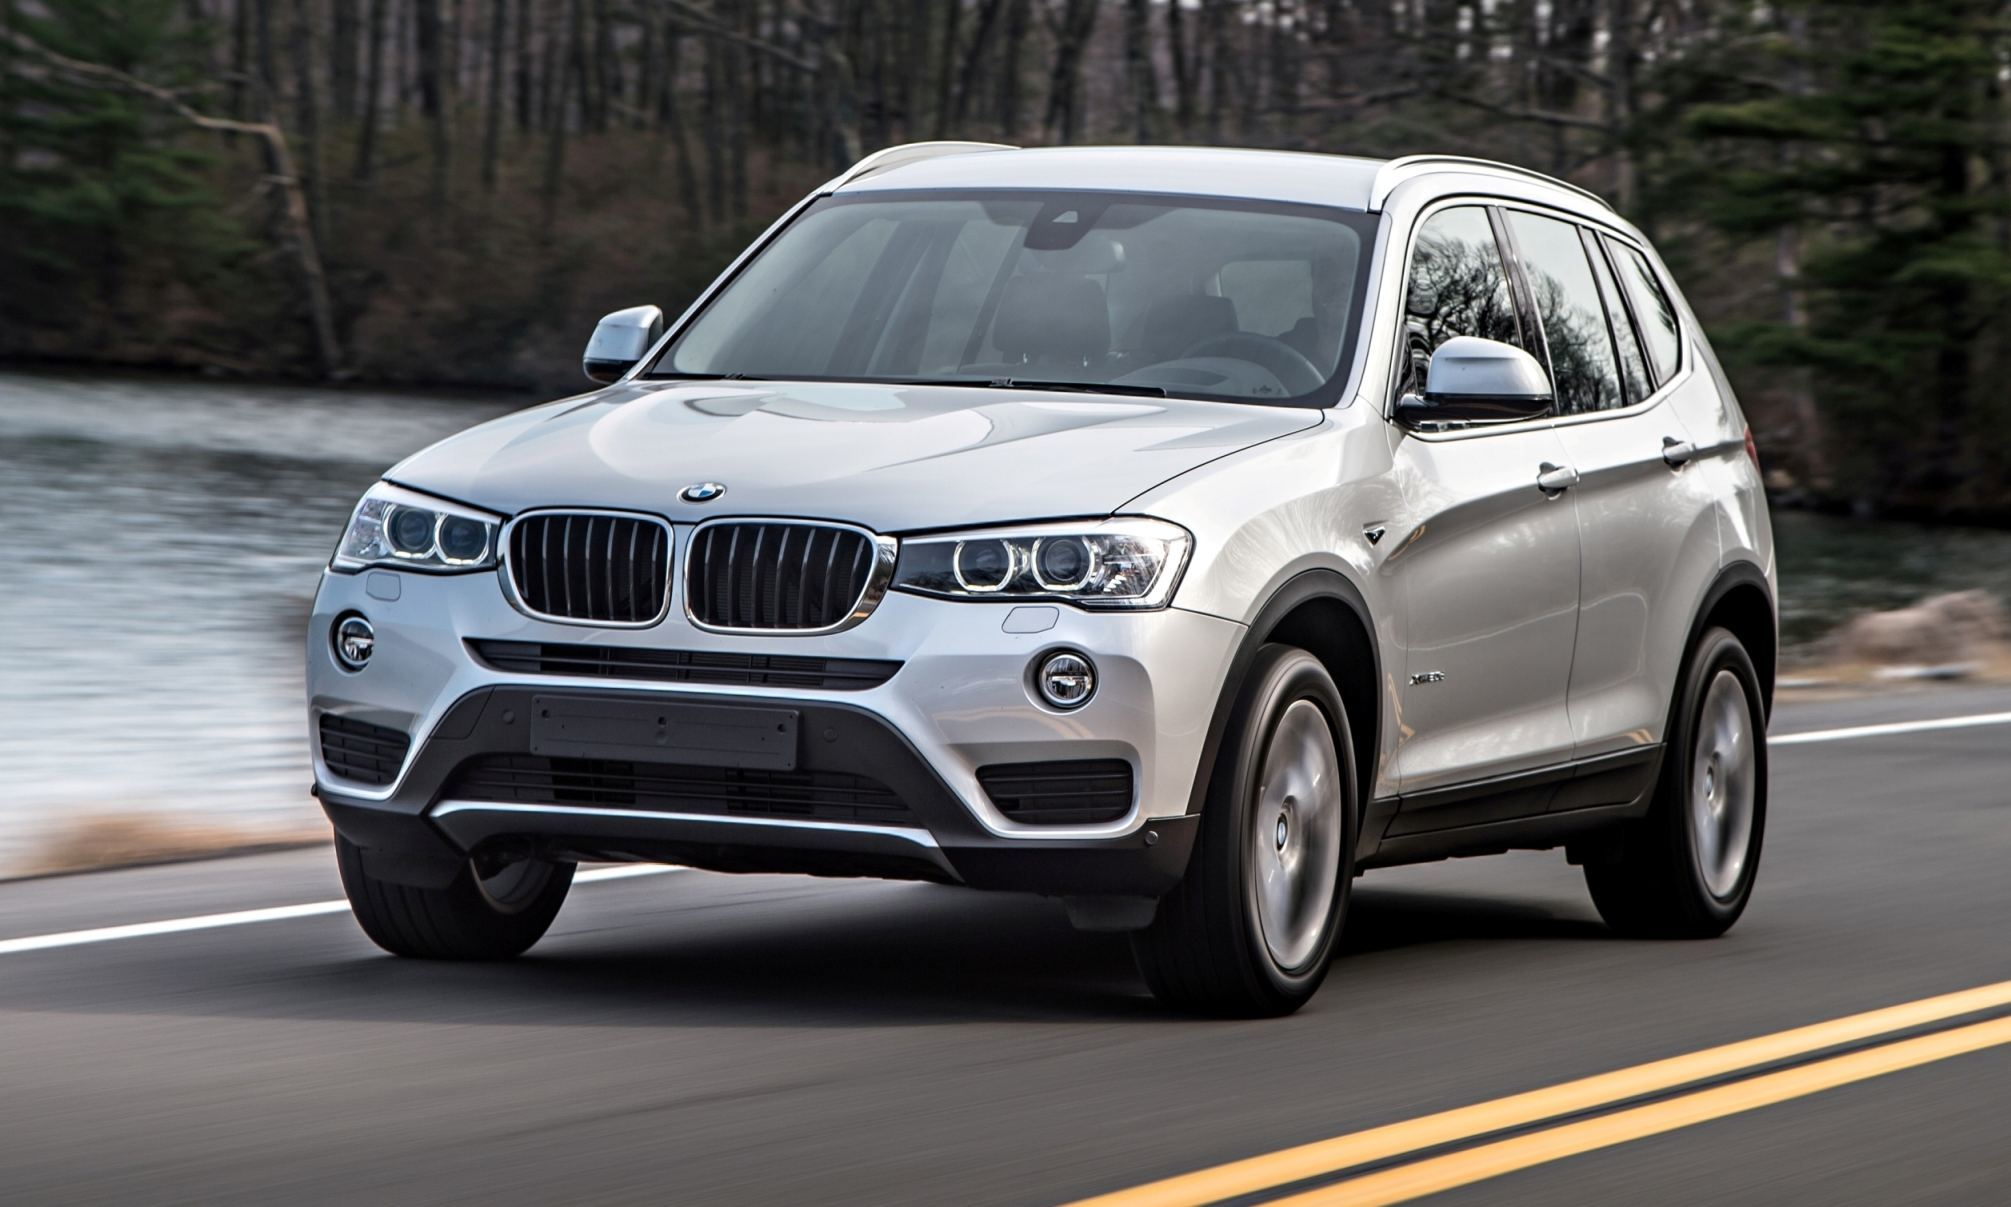 2015 bmw x3 xline vs m sport pricing specs with 100 new real life photos. Black Bedroom Furniture Sets. Home Design Ideas